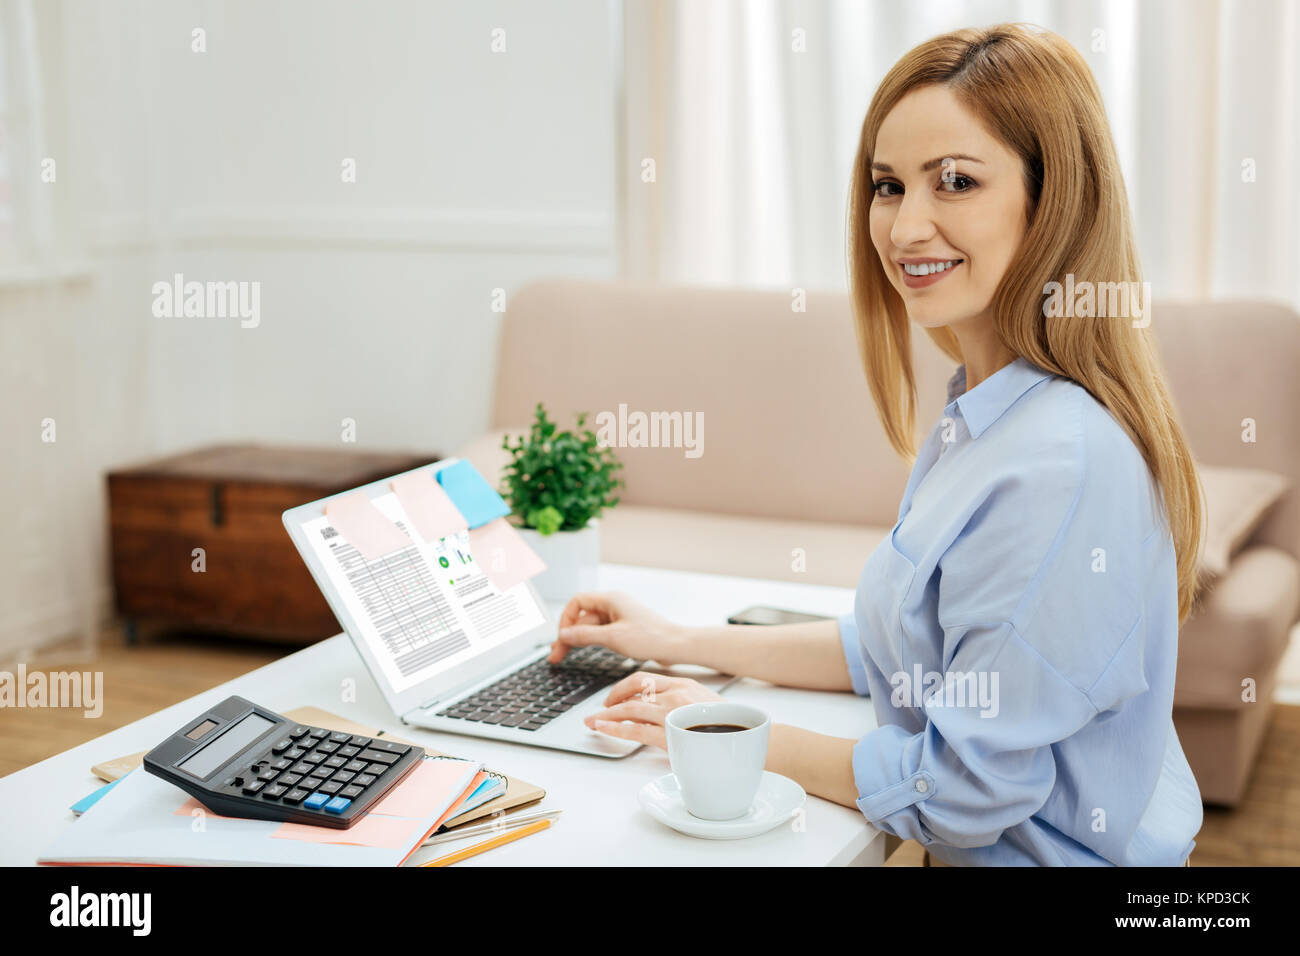 Inspired businesswoman working from home - Stock Image